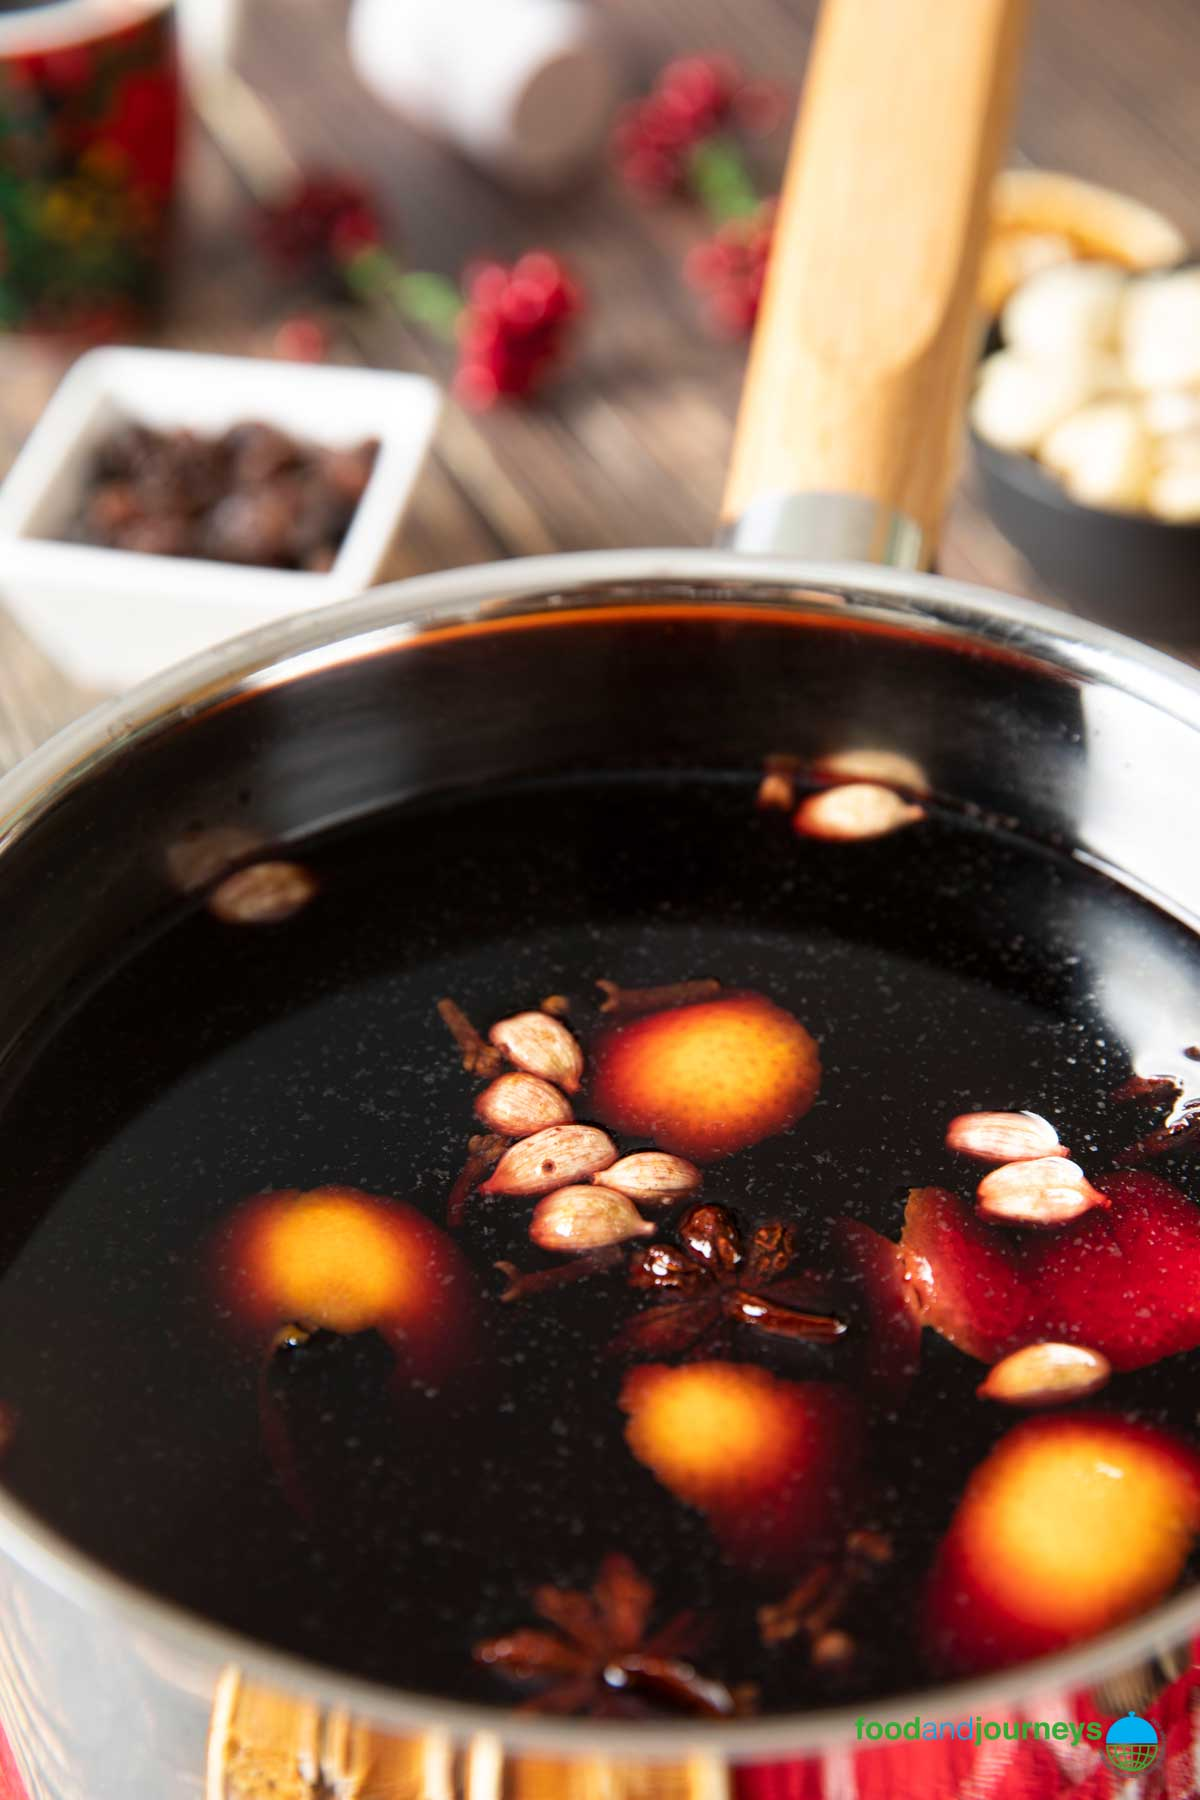 A closer shot of a saucepan filled with Swedish mulled wine, with t he spices floating; on the side, raisins and blanched almonds are shown.